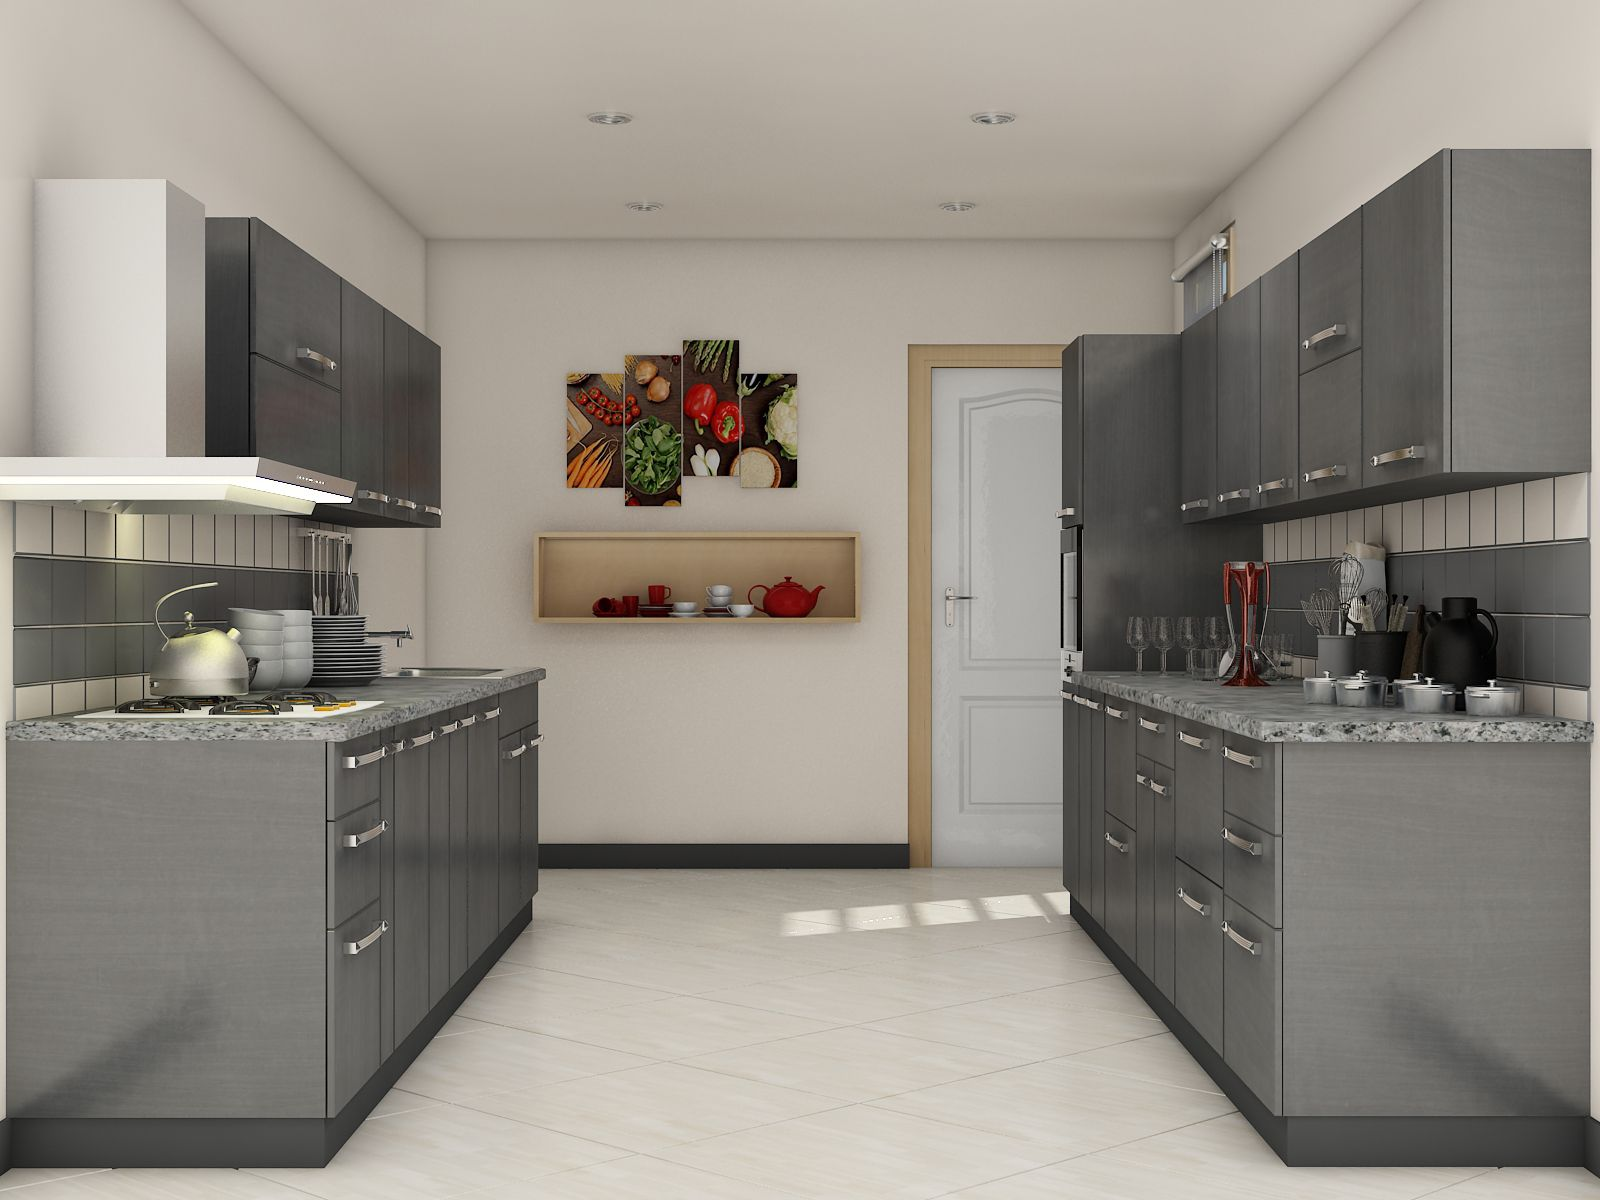 designs charming mesmerize will you that kitchen mediterranean